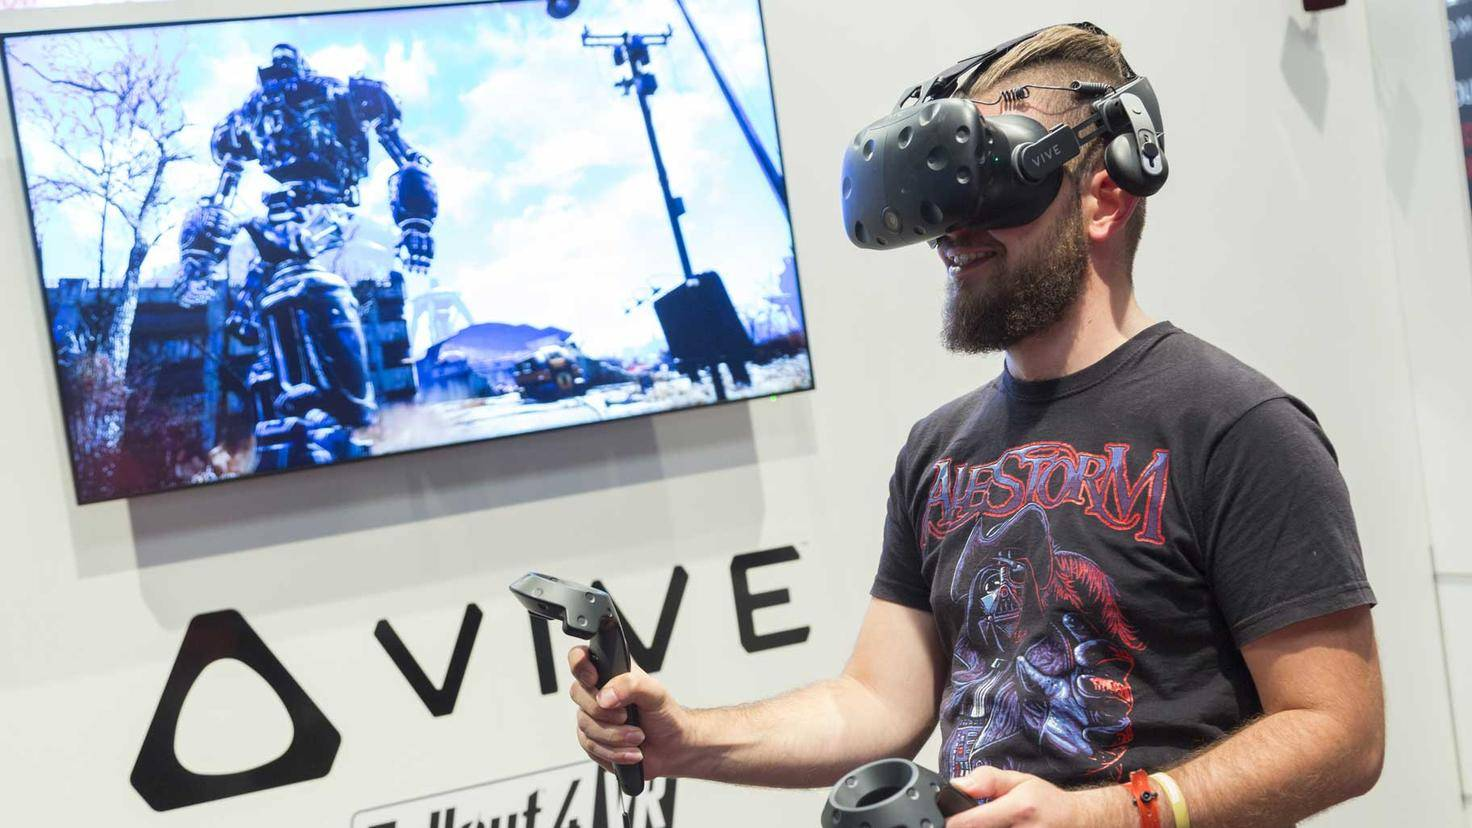 gamescom-htc-vive